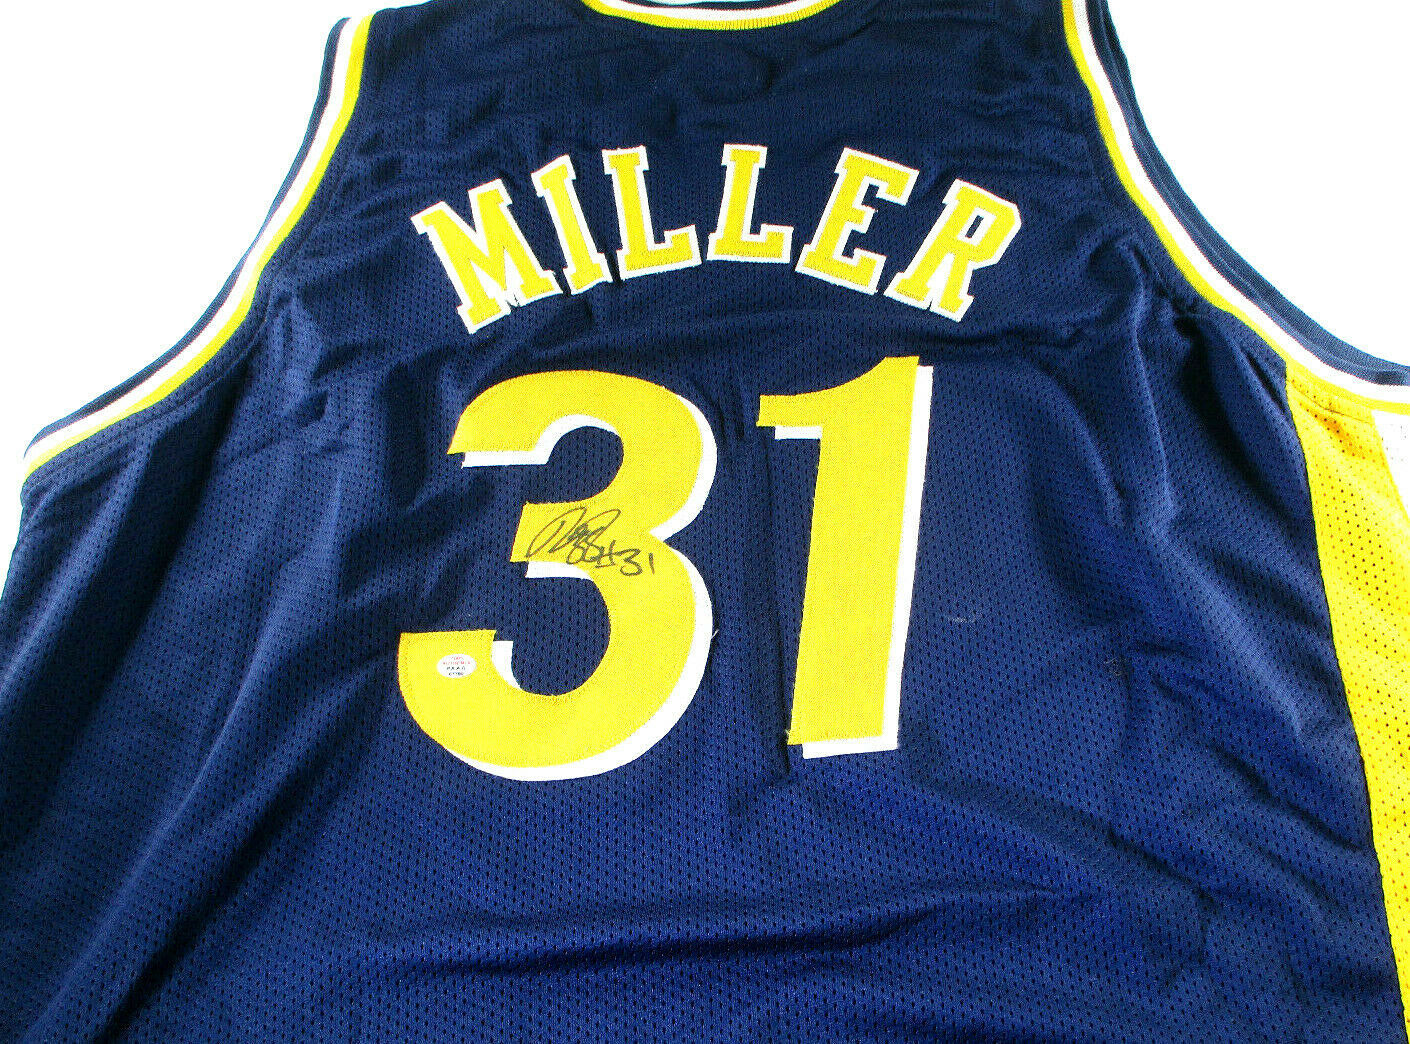 REGGIE MILLER / HALL OF FAME / AUTOGRAPHED INDIANA PACERS CUSTOM JERSEY / COA